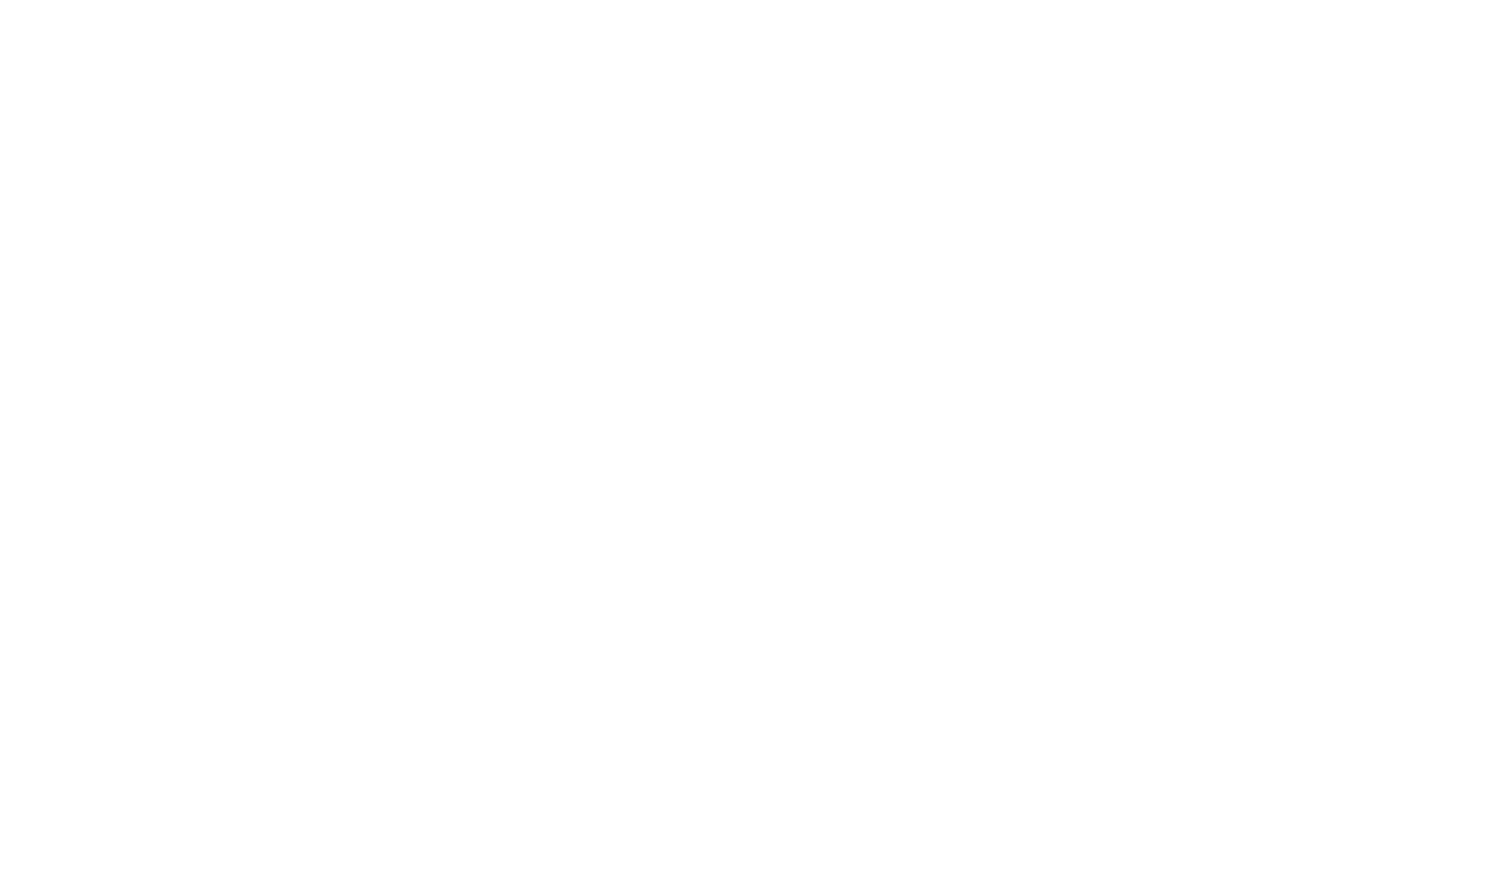 Katz Pagan Ways & Spiritual Guidance